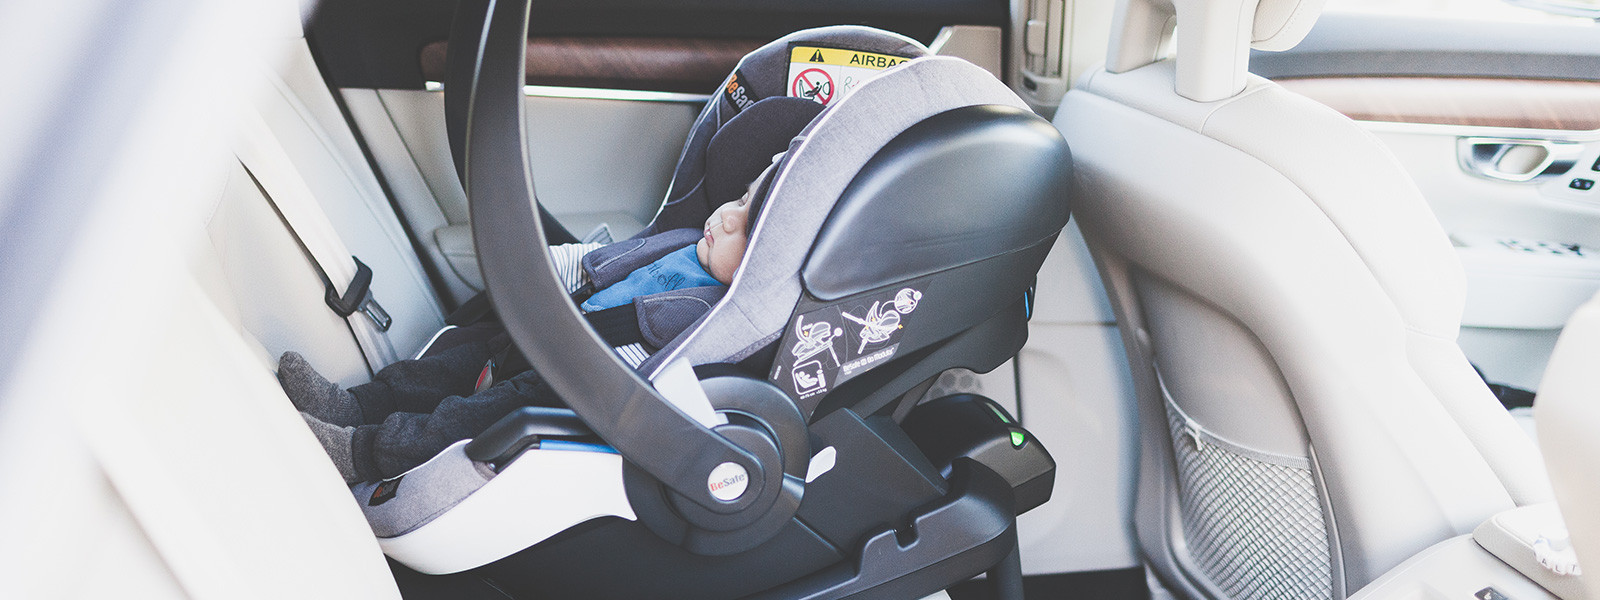 Magnificent When To Change Car Seats For Children A Full Overview Creativecarmelina Interior Chair Design Creativecarmelinacom